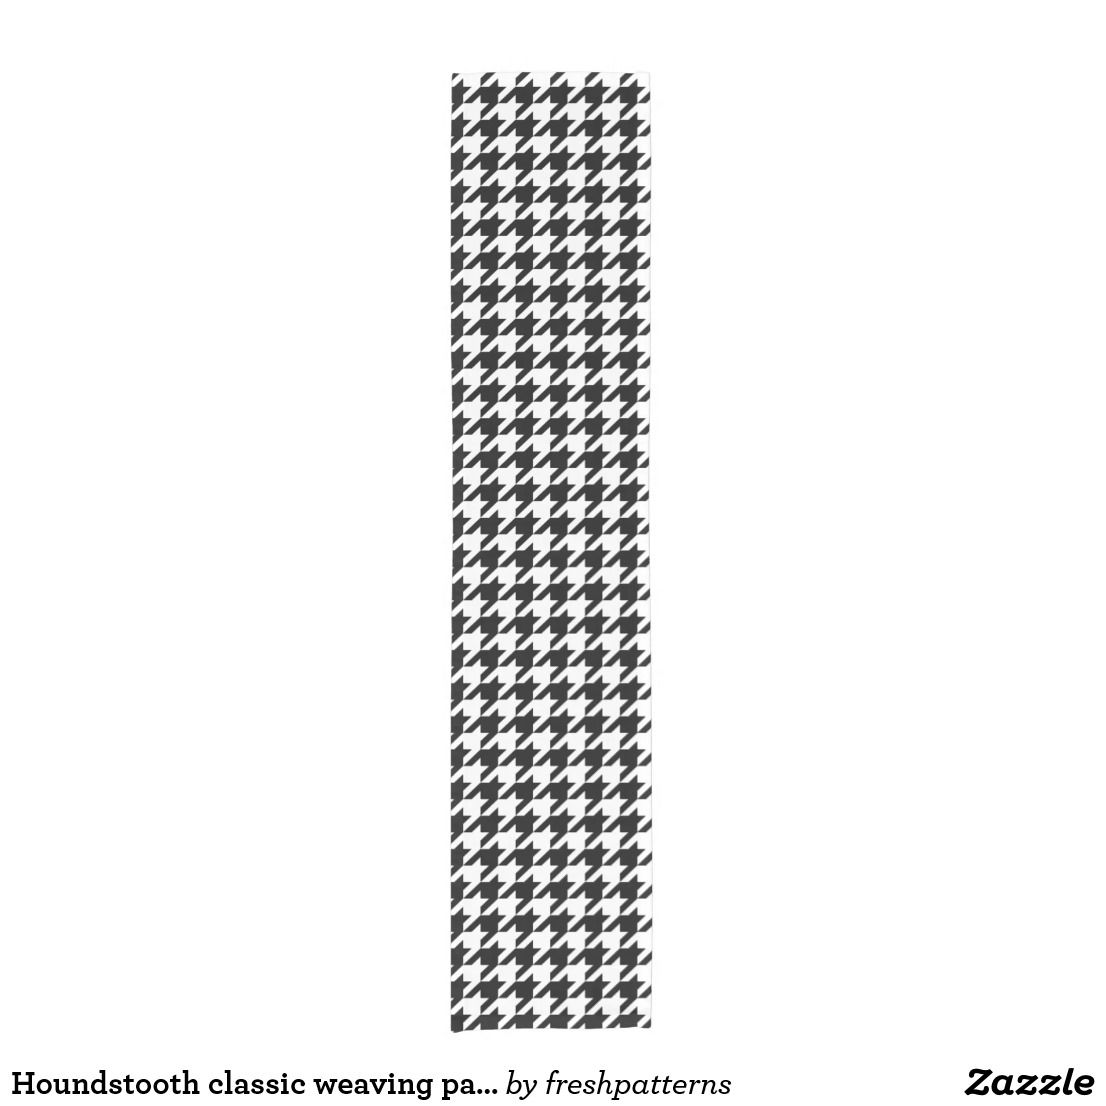 Houndstooth classic weaving pattern short table runner